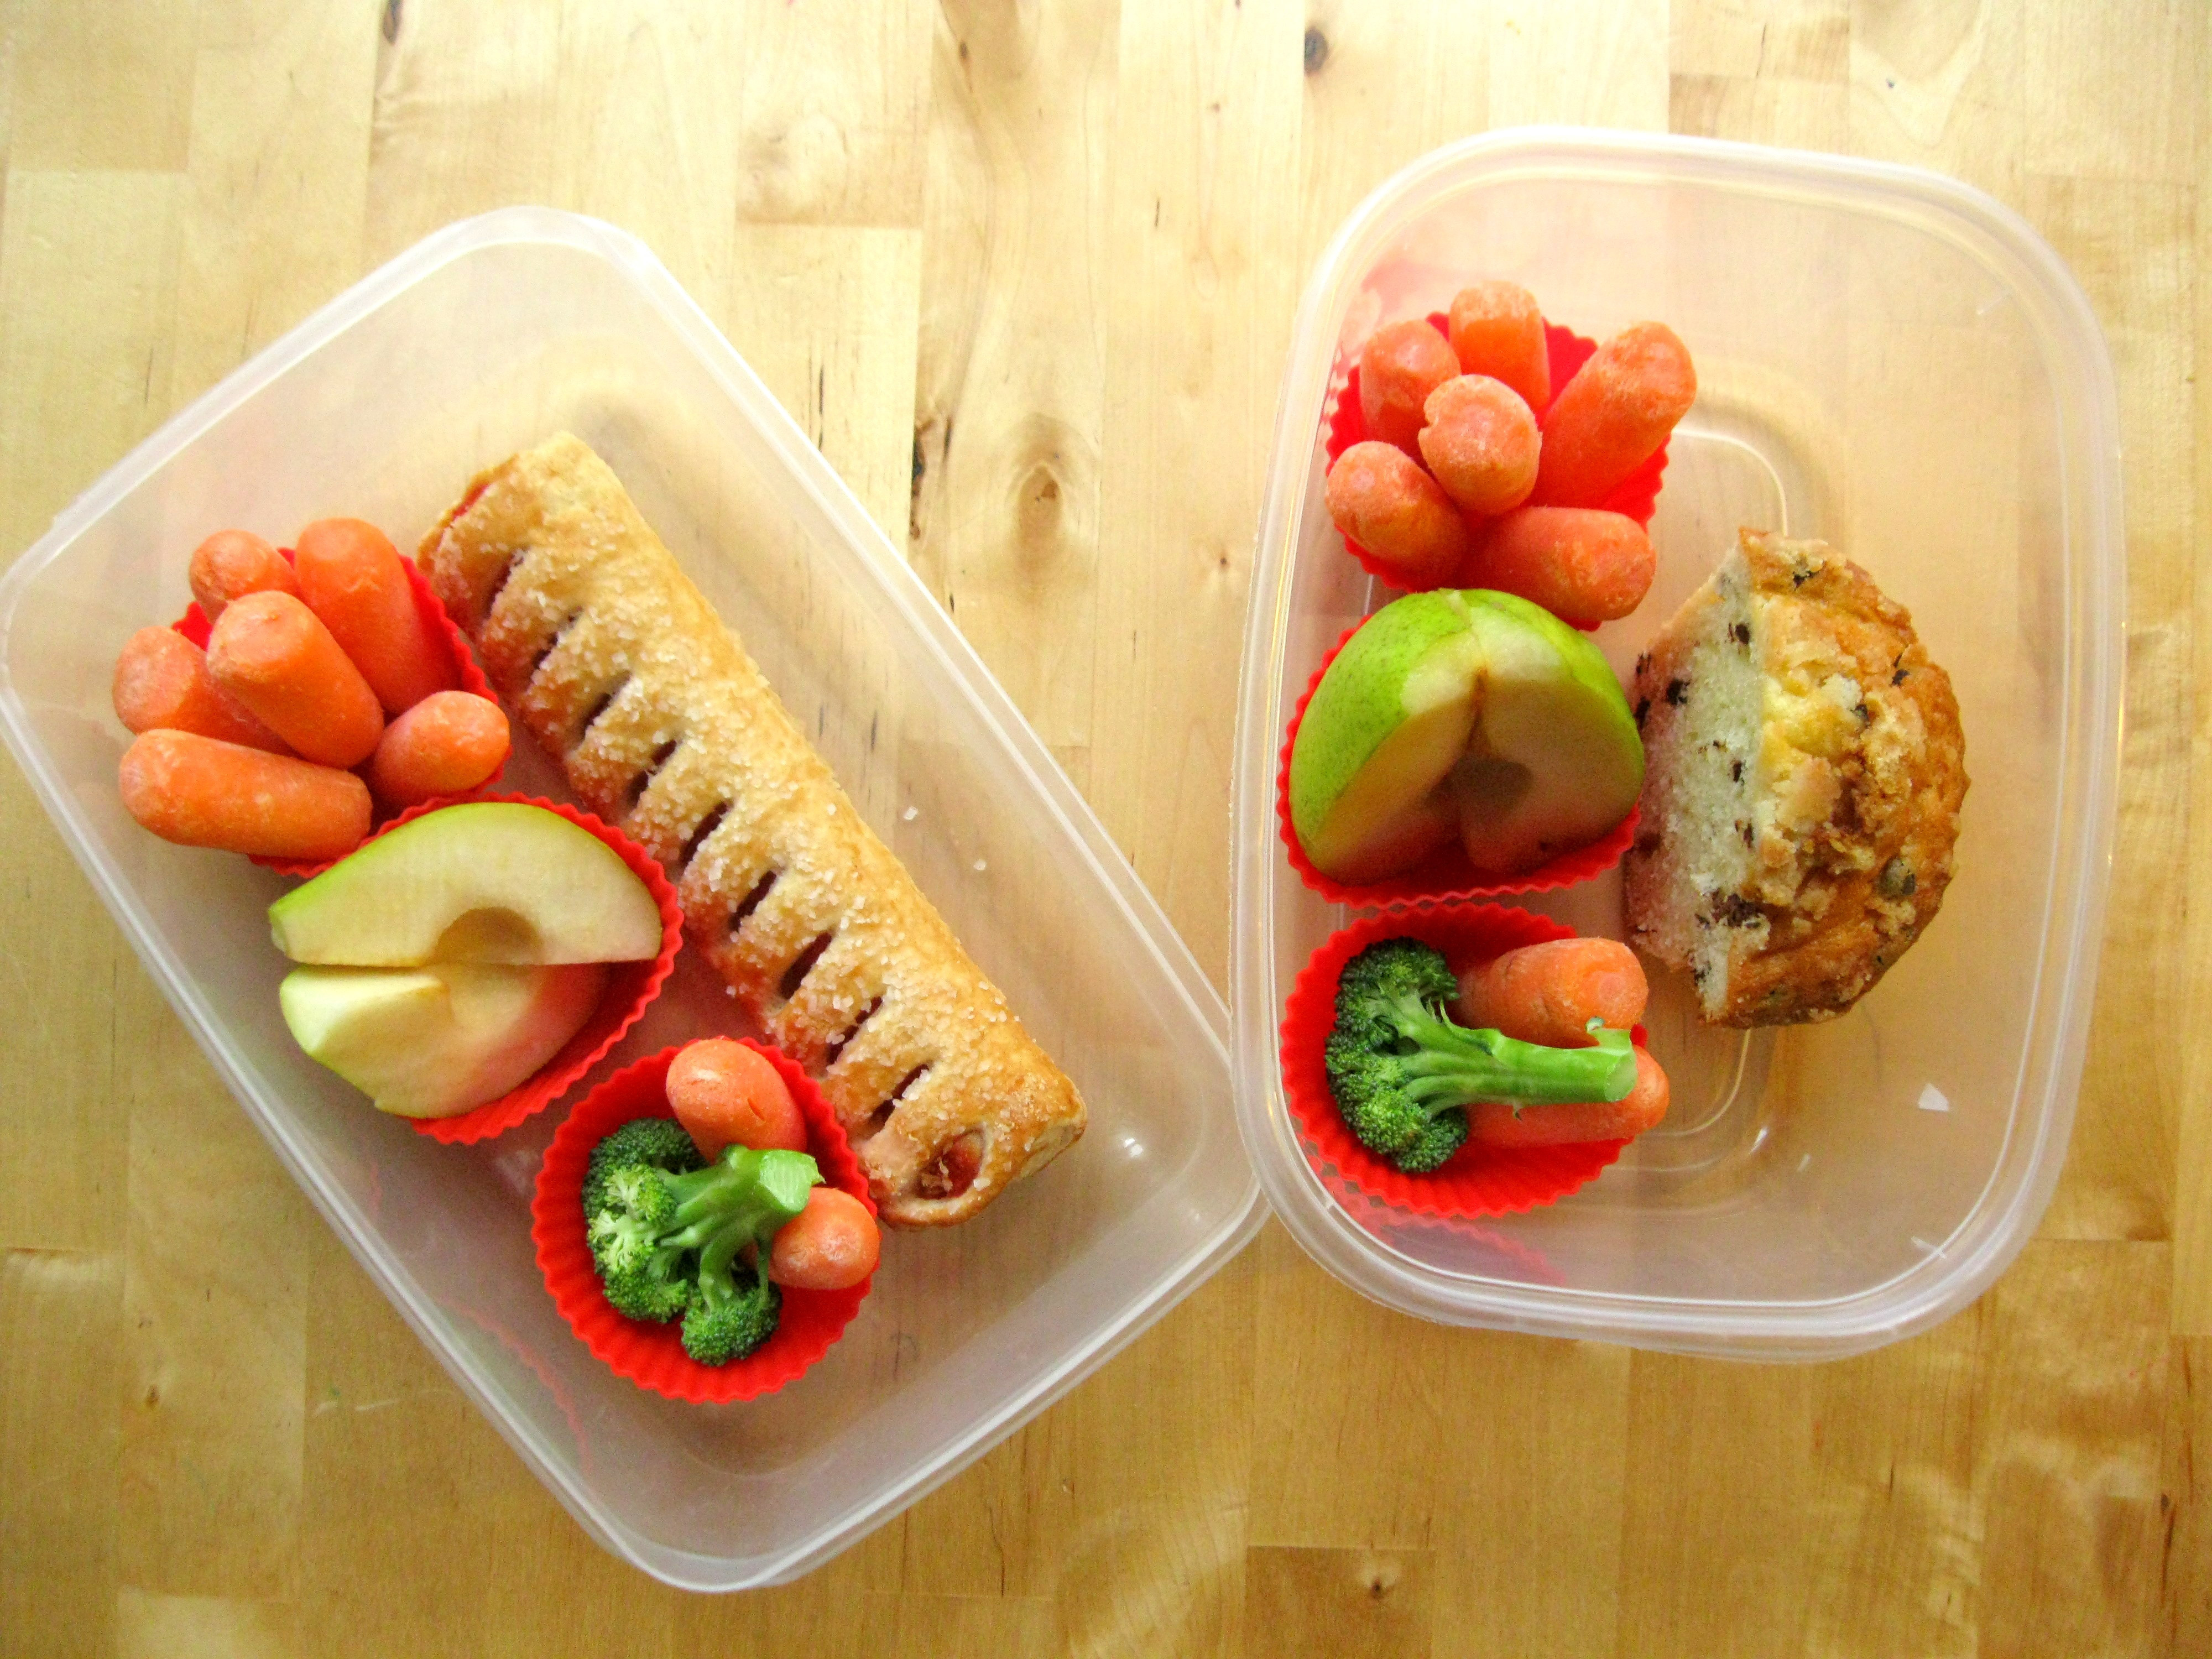 Healthy Snacks For Children  In the Kitchen Self Serving Snack Box Tutorial and